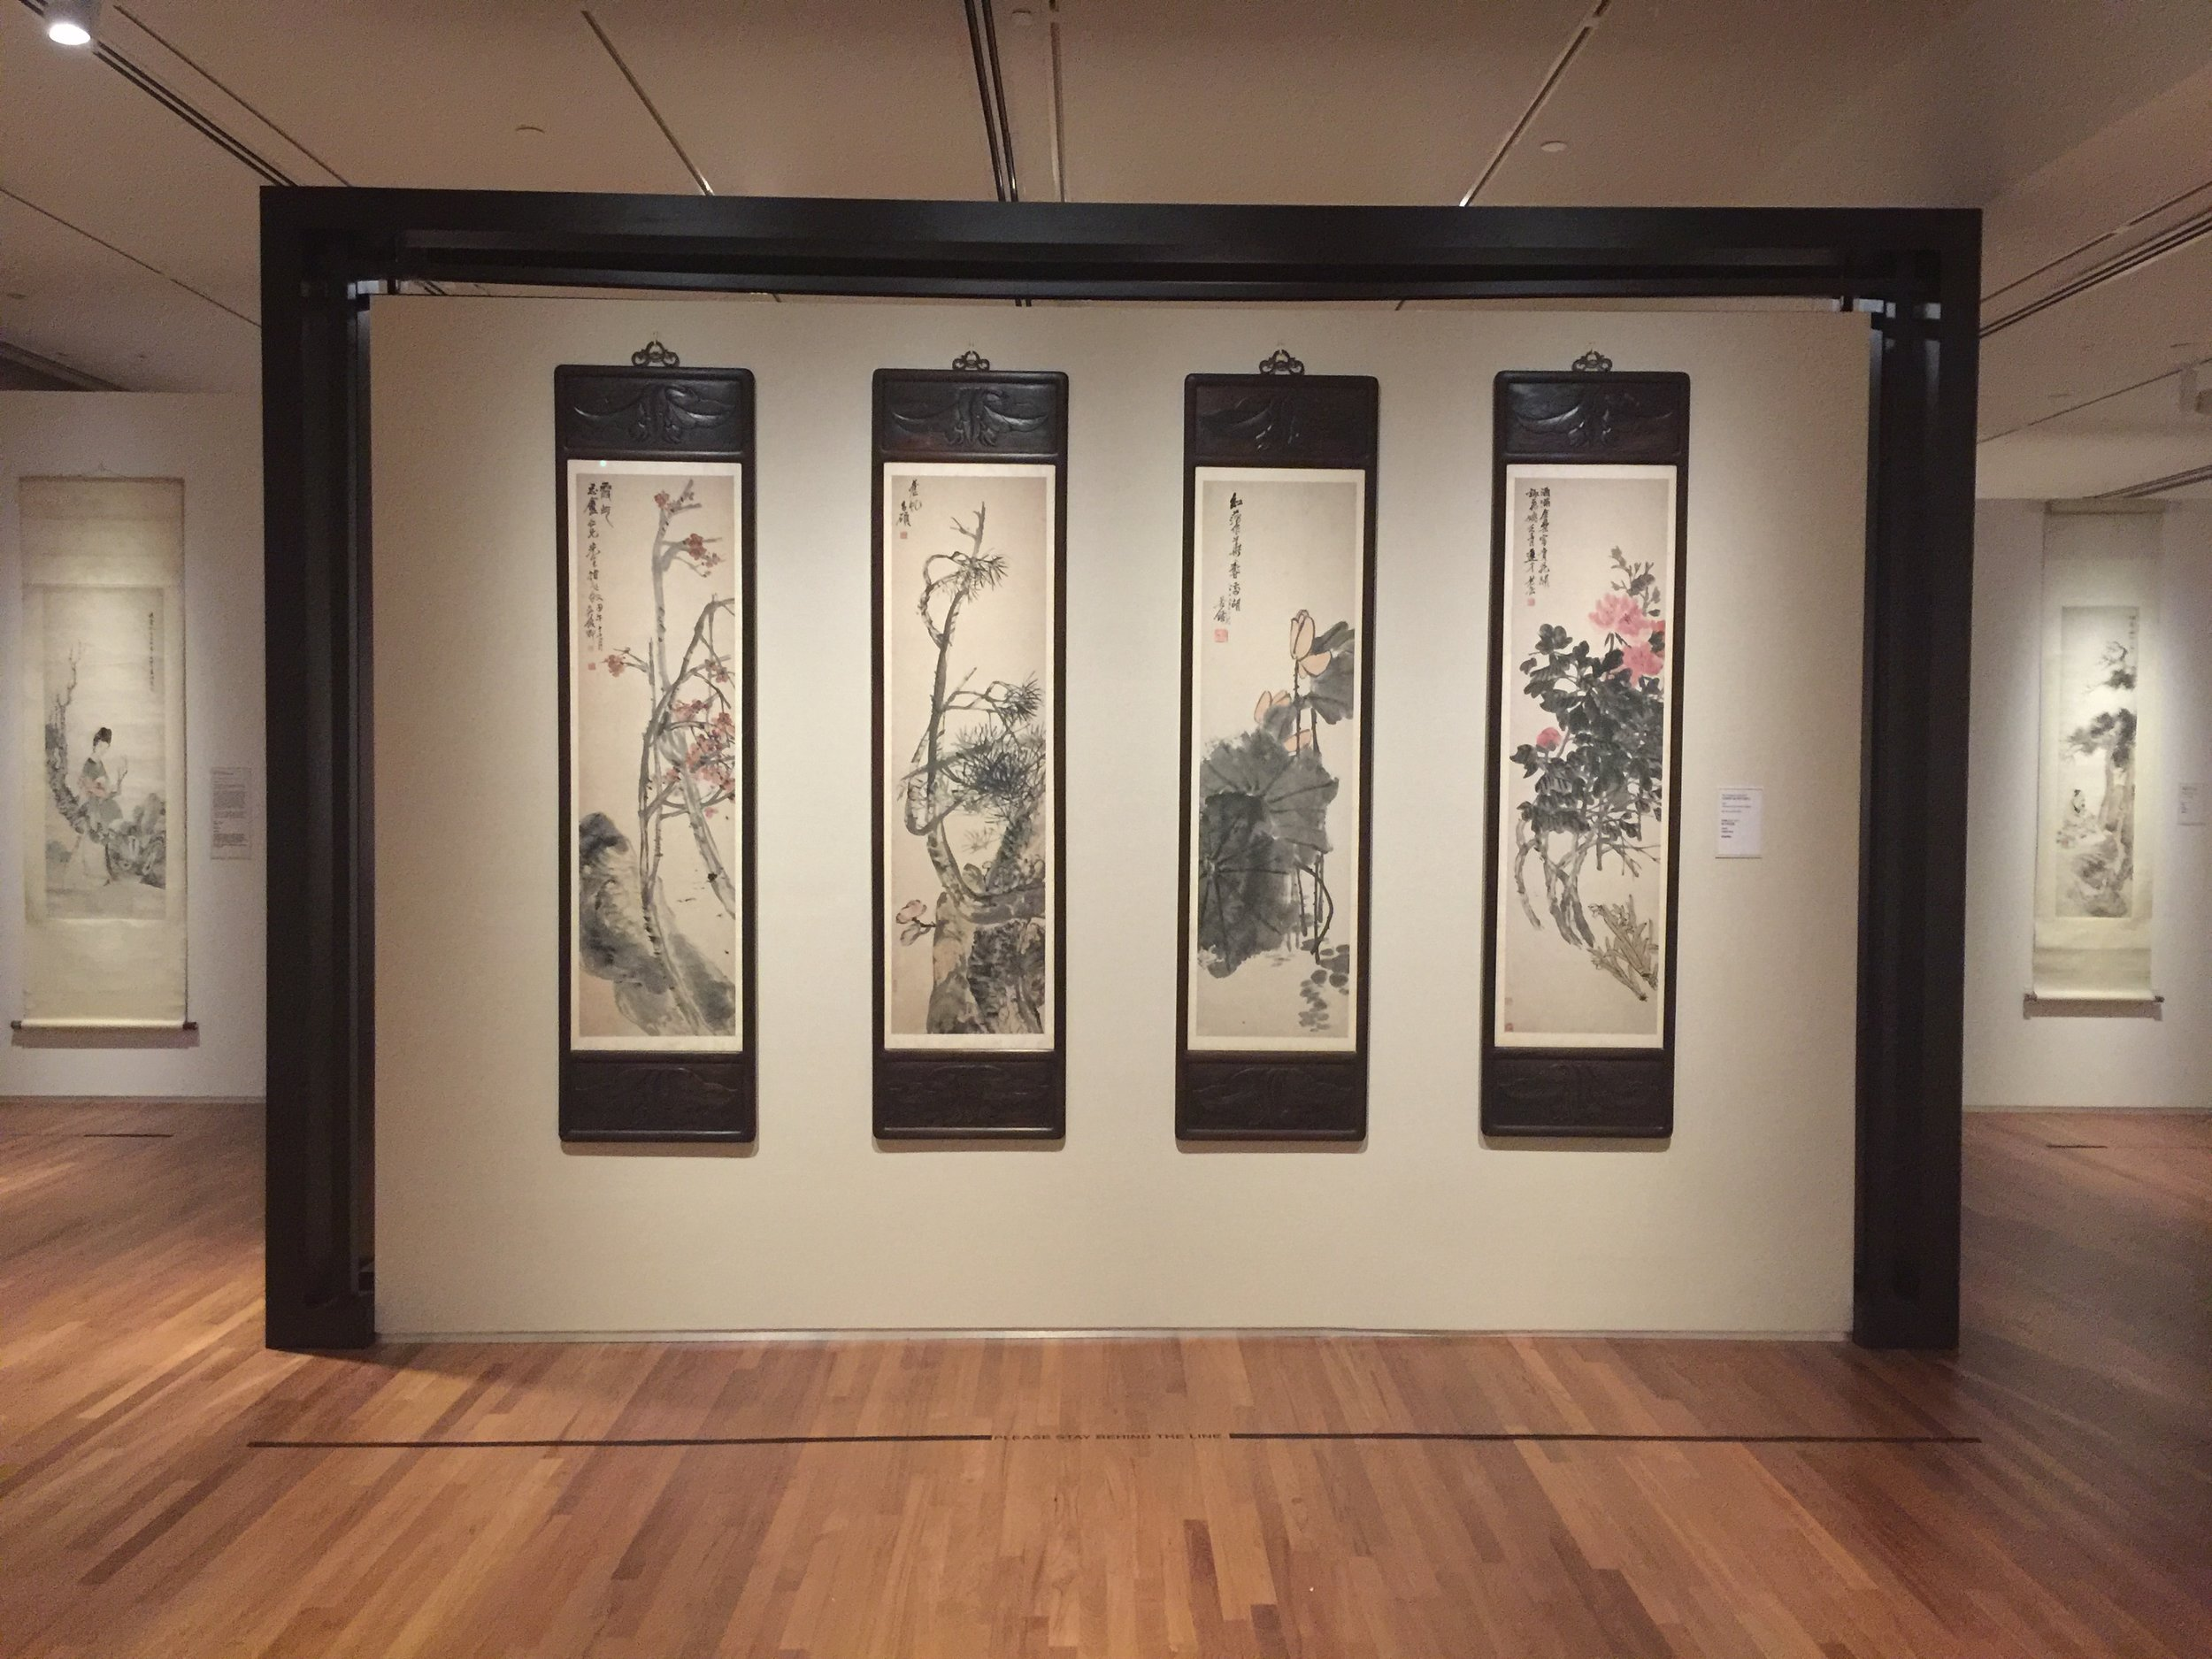 Rediscovering Treasures: Ink Art from the Xiu Hai Lou Collection 《袖中有东海:袖海楼水墨藏珍》